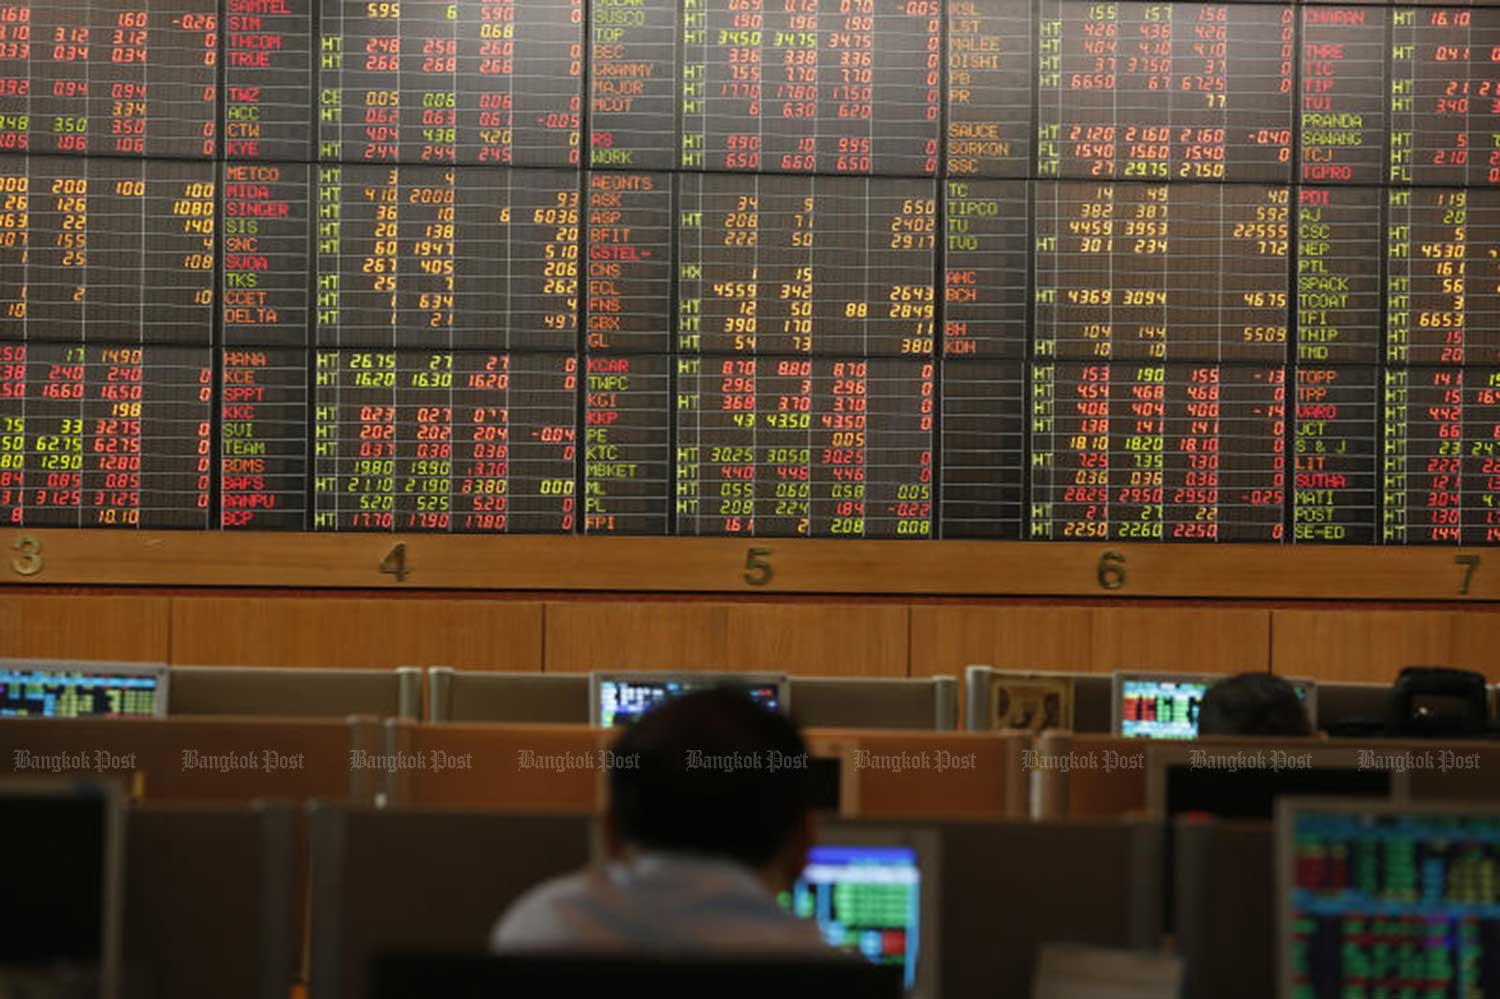 Stock market on March 13. (File photo)